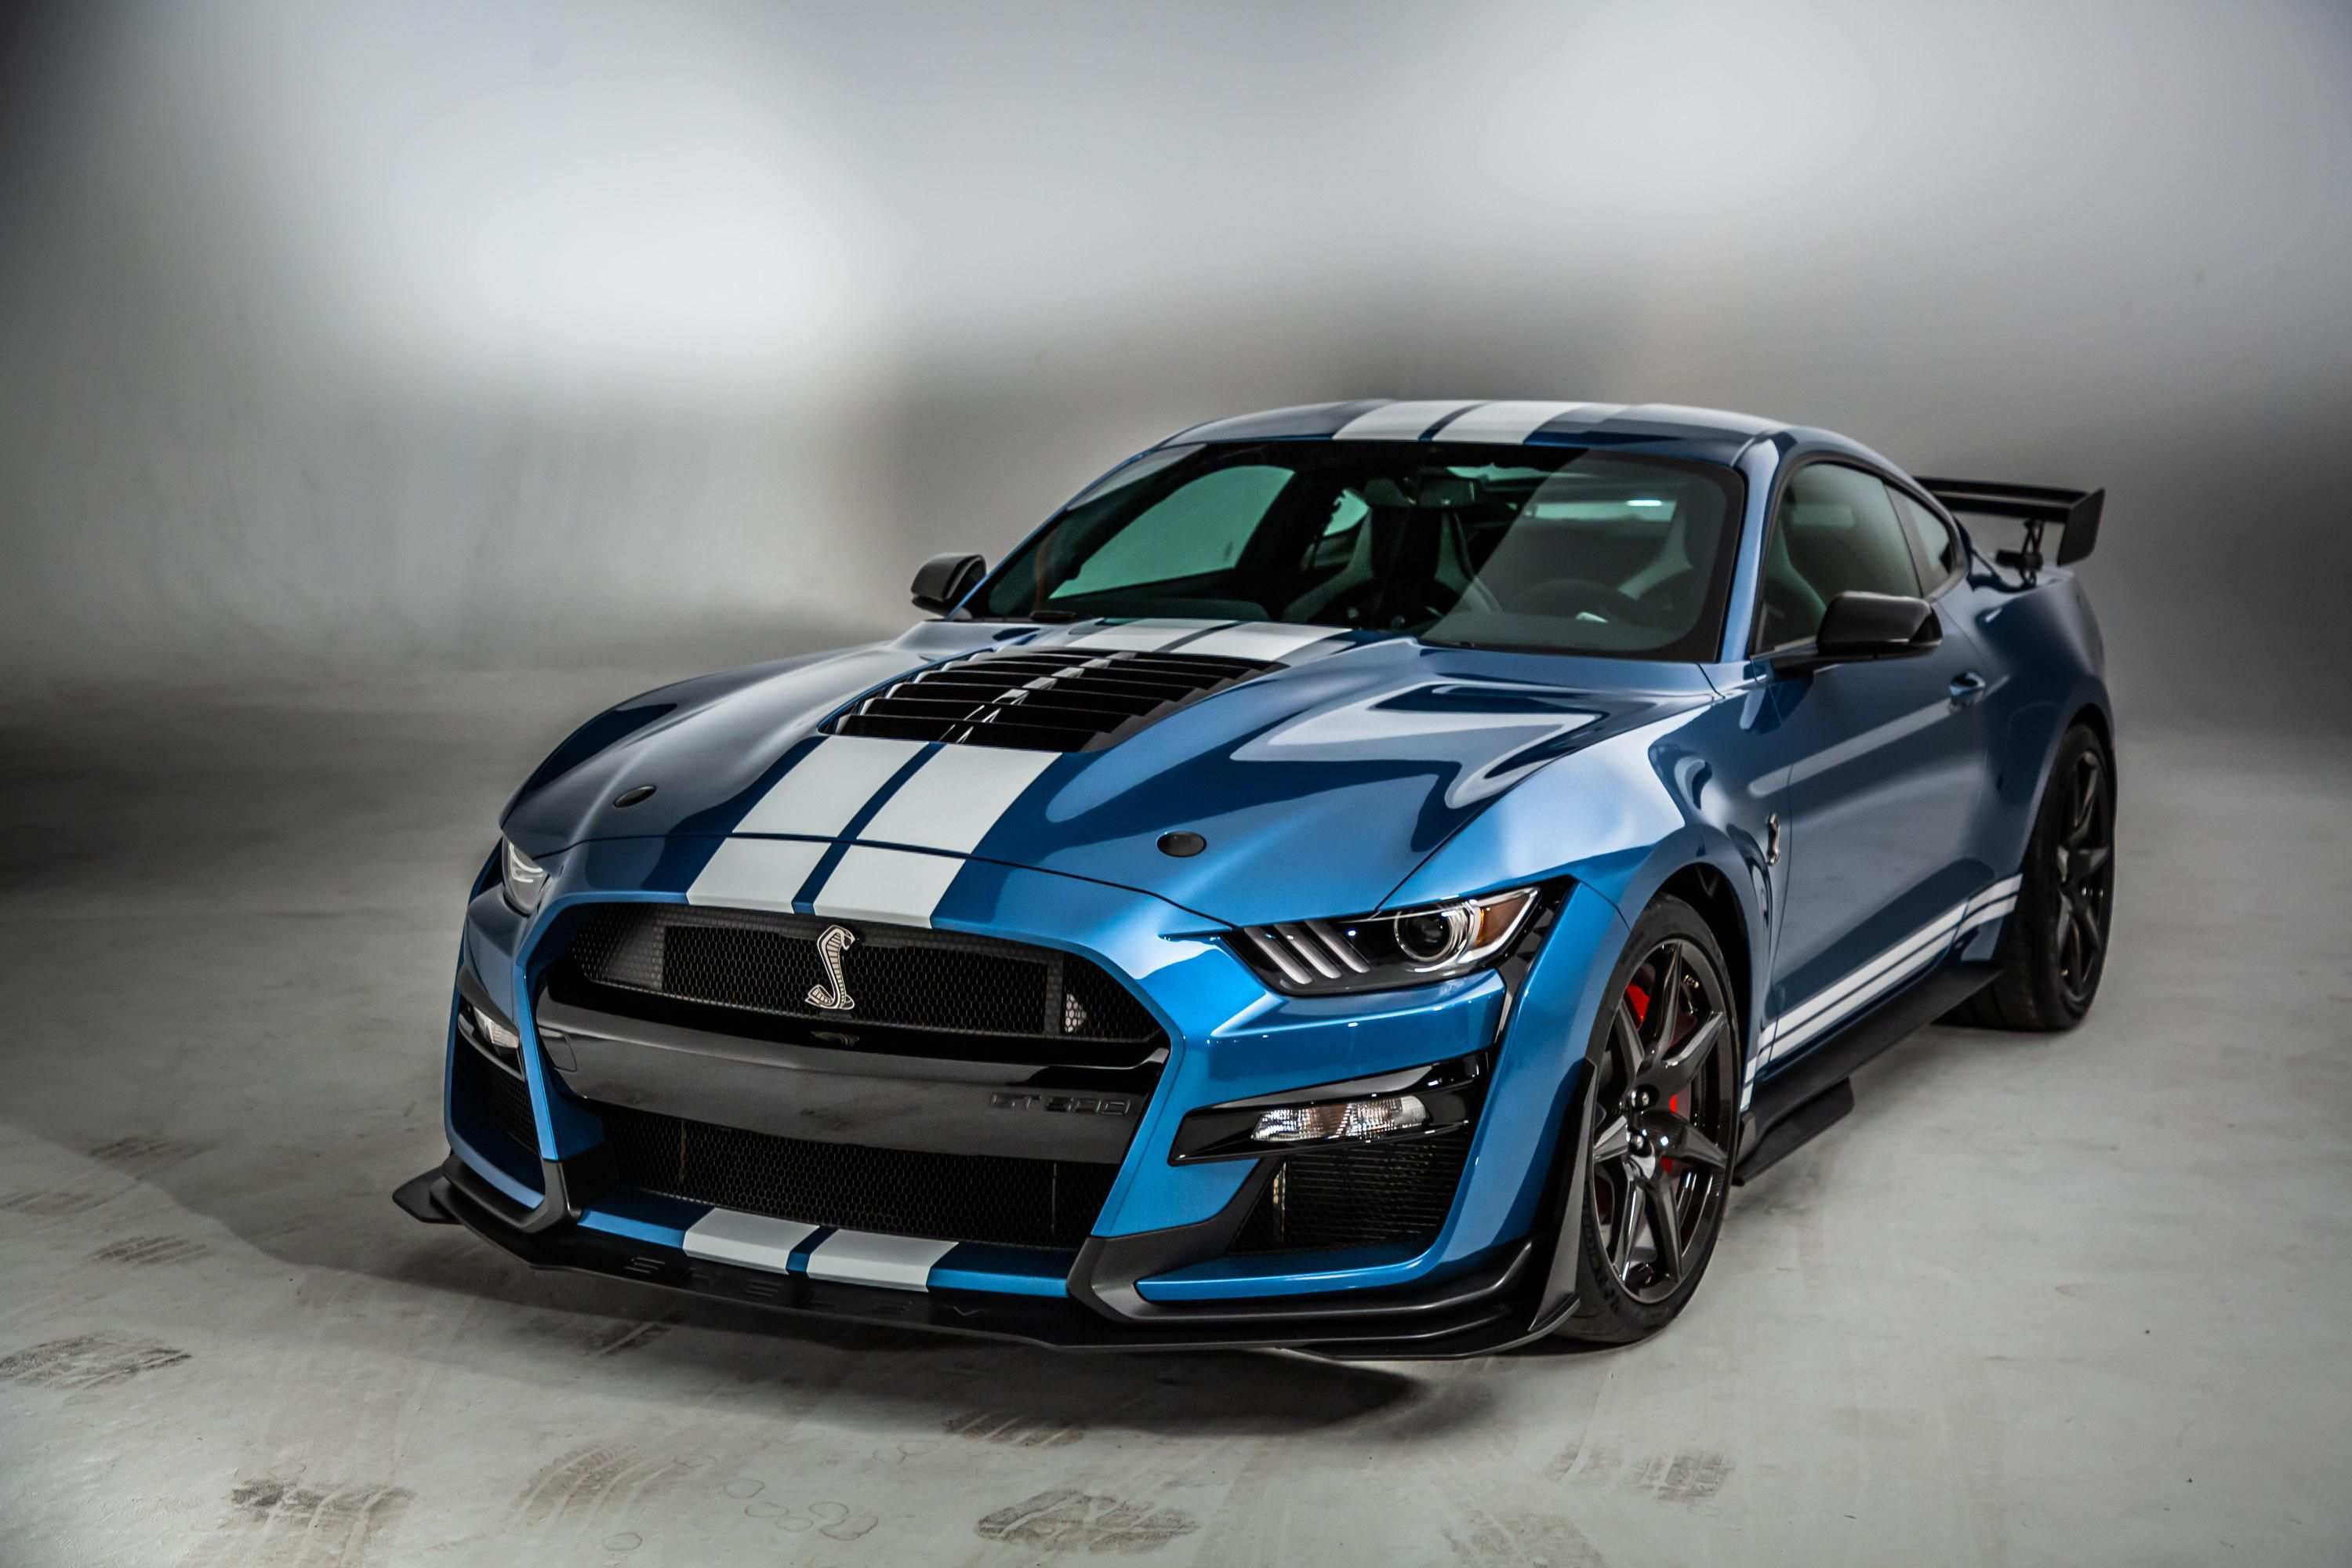 18 Best Price Of 2020 Ford Mustang Gt500 Redesign And Concept